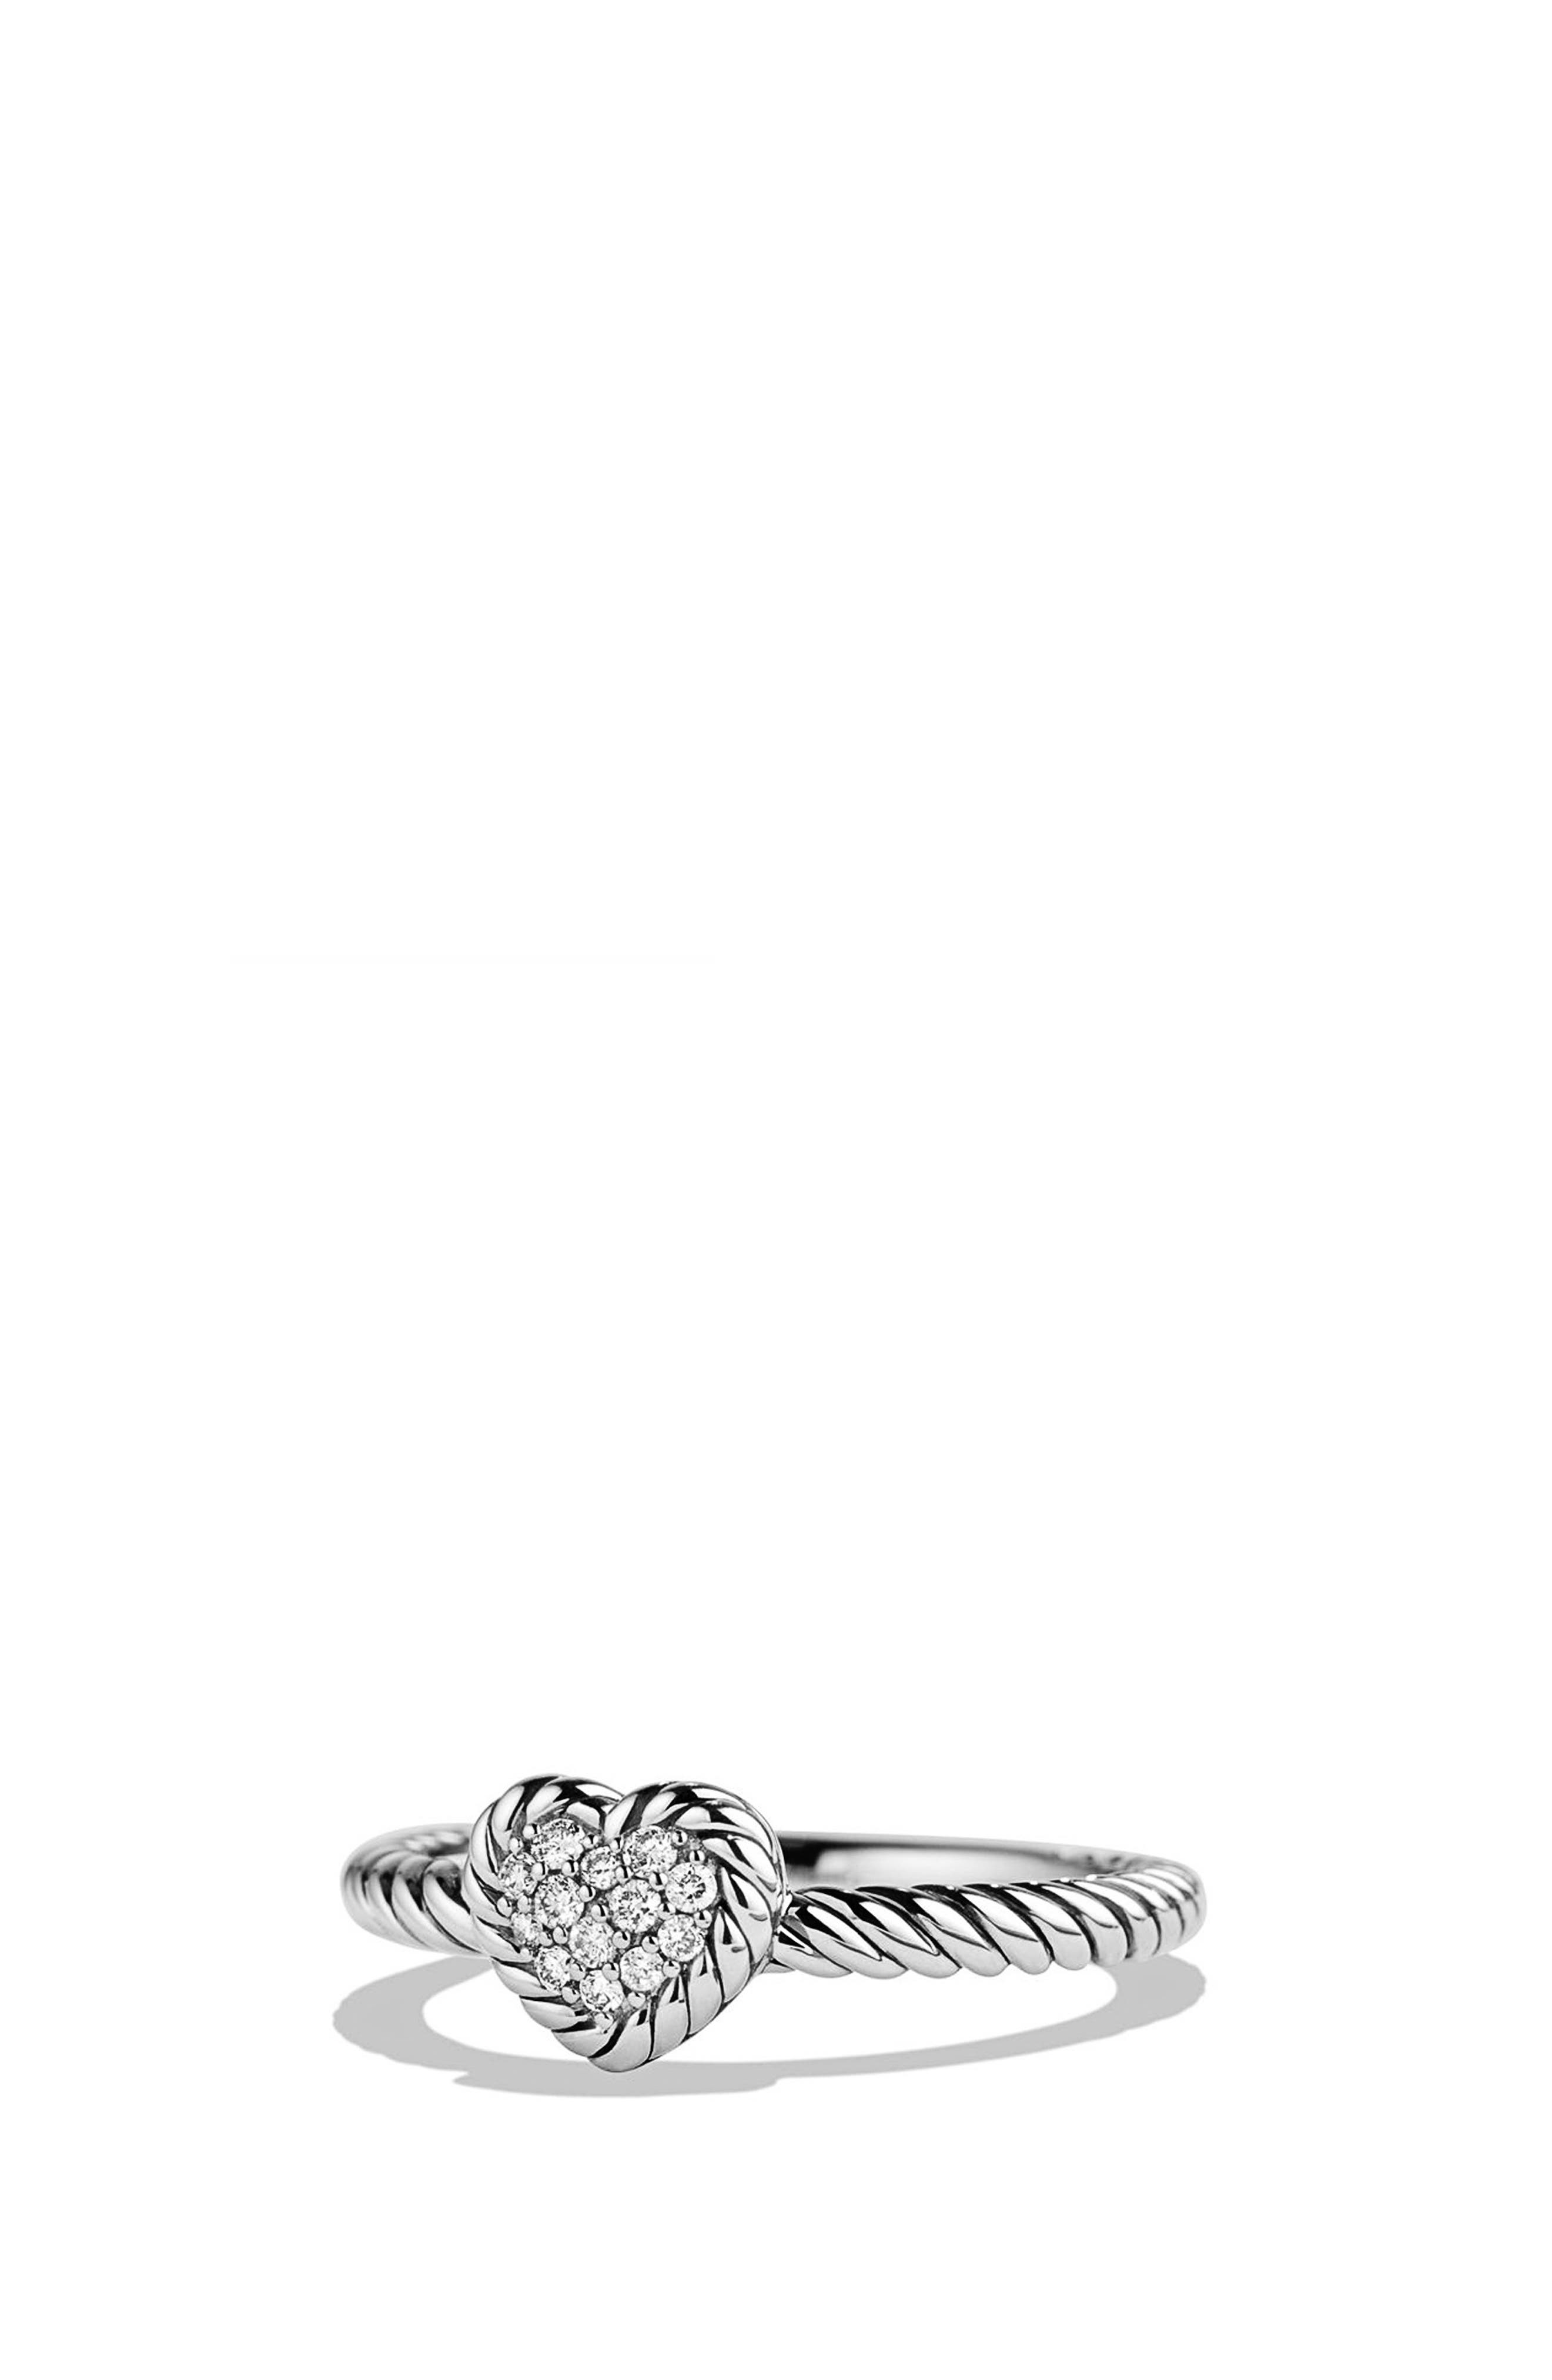 'Châtelaine' Heart Ring with Diamonds,                         Main,                         color, SILVER